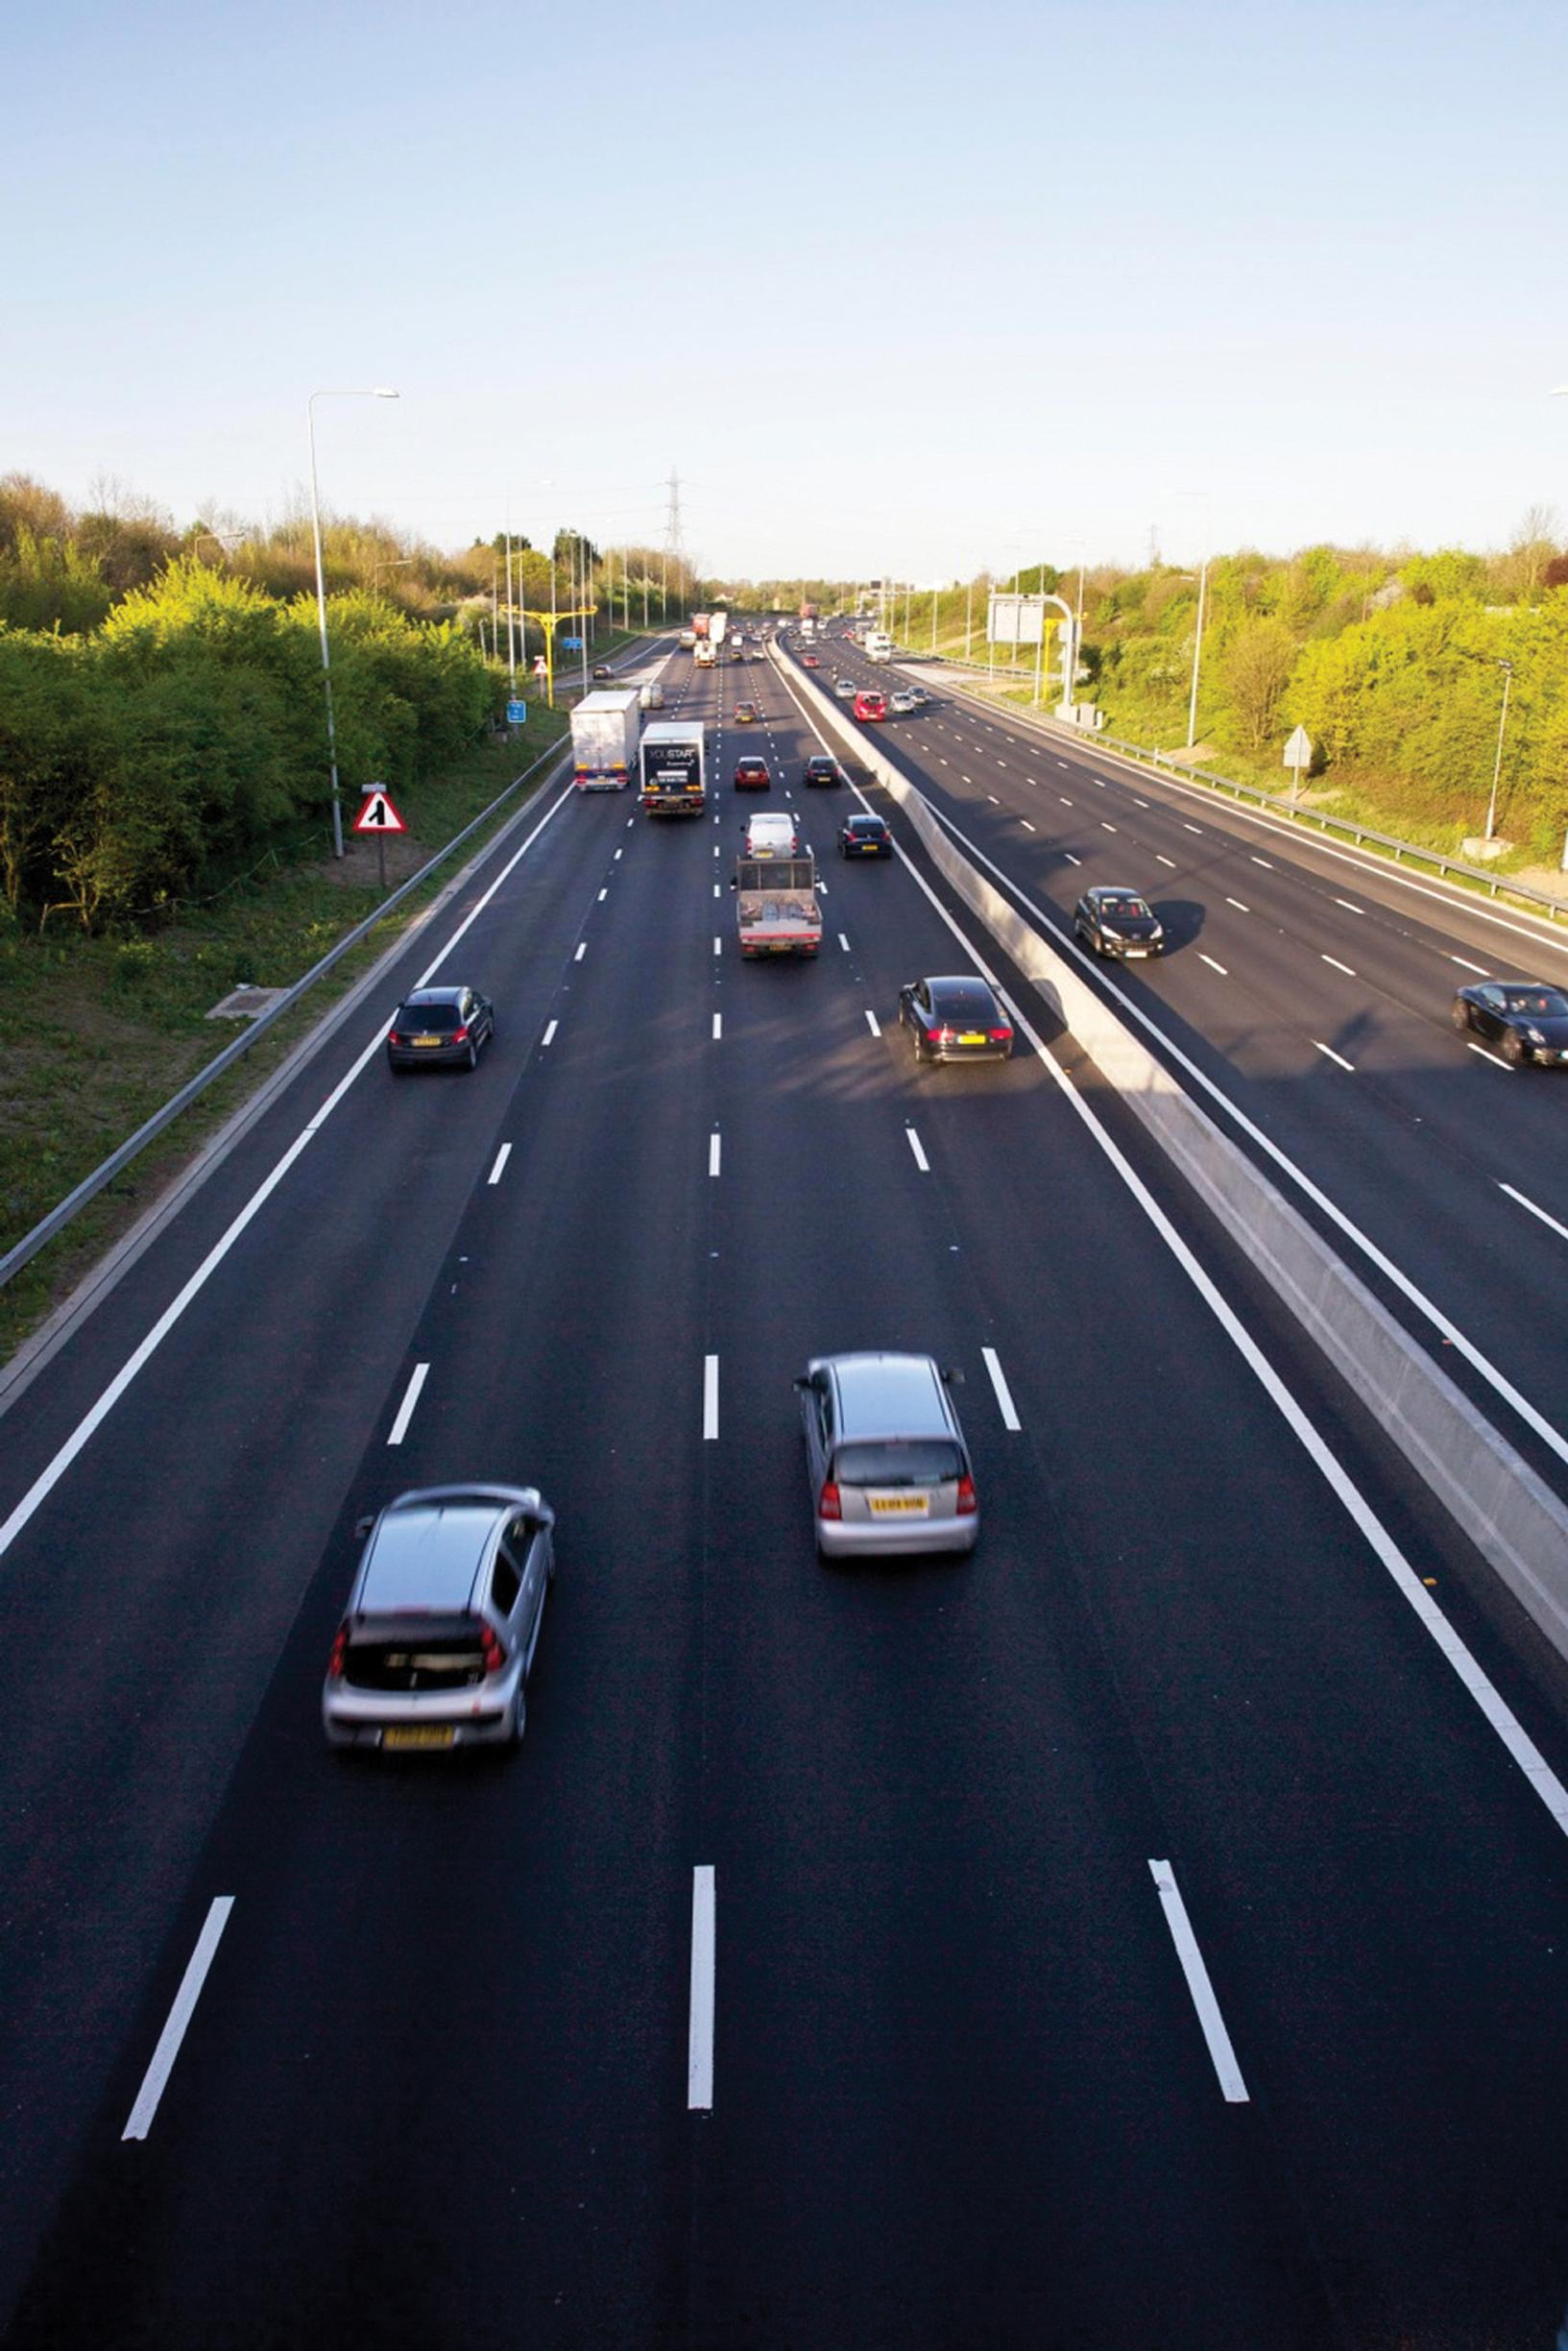 All-lane running on the M25: the DfT is reviewing the evidence on new road capacity and traffic levels